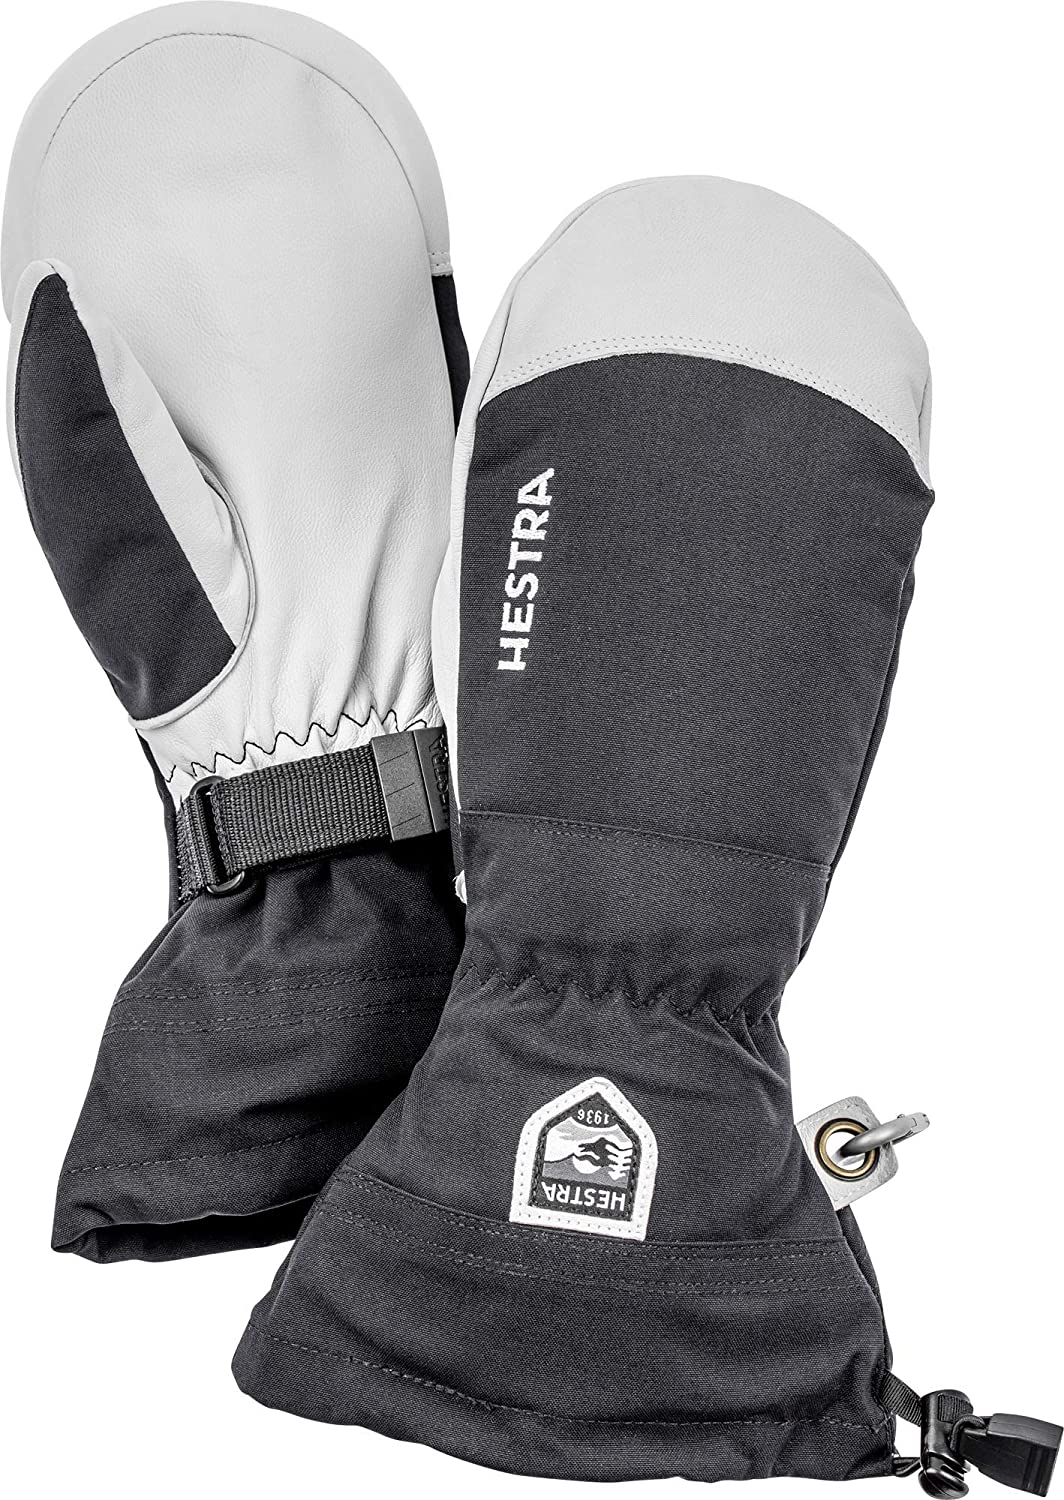 Hestra Army Leather Heli Ski Glove - Classic Snow Mitten for Skiing, Snowboarding and Mountaineering